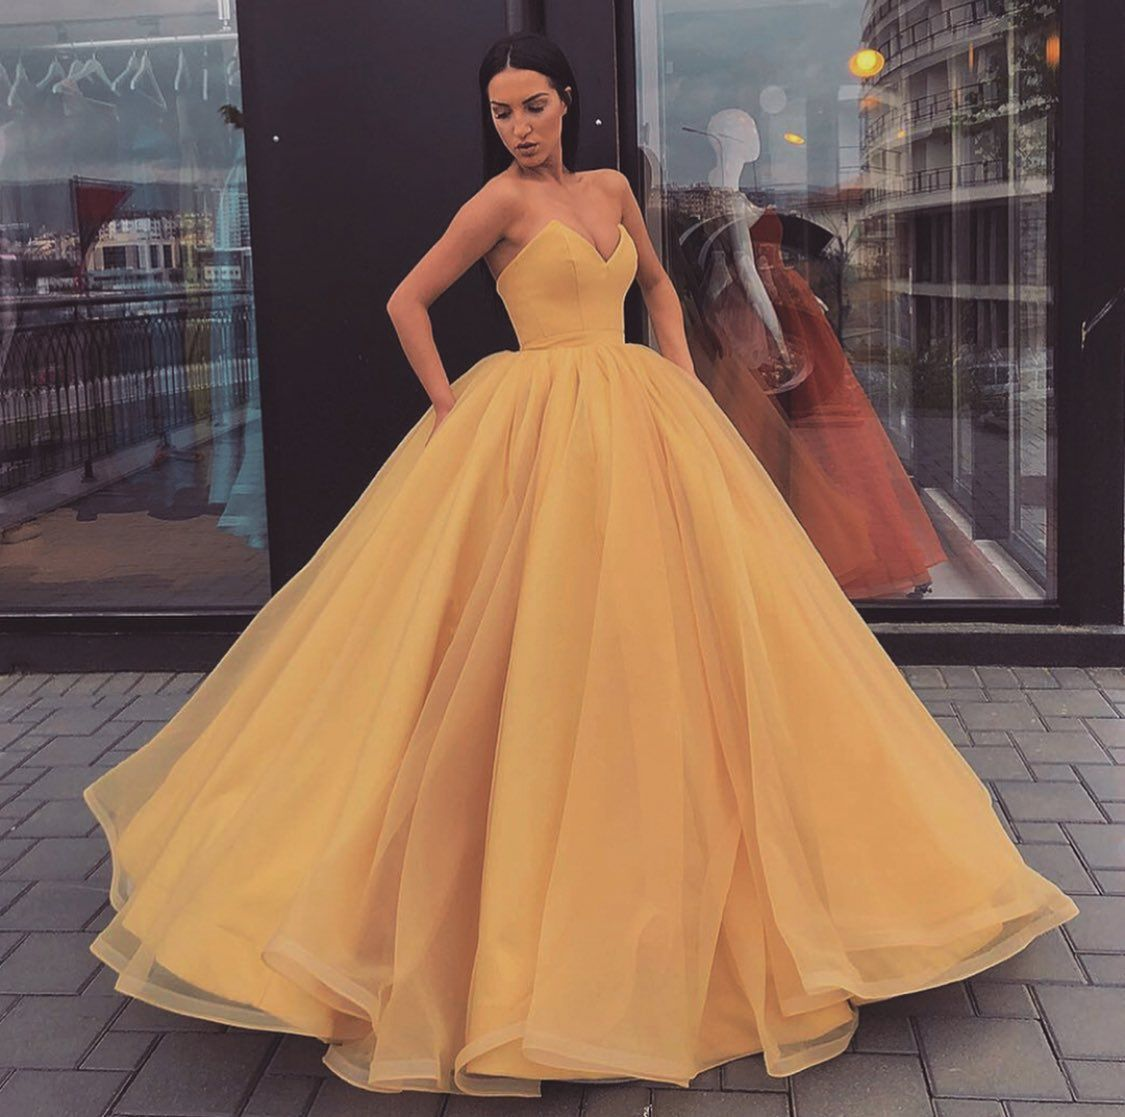 33281fd8092 Organza Ball Gowns Prom Dresses V-neck Corset Quinceanera Dresses For Sweet  16 on Luulla